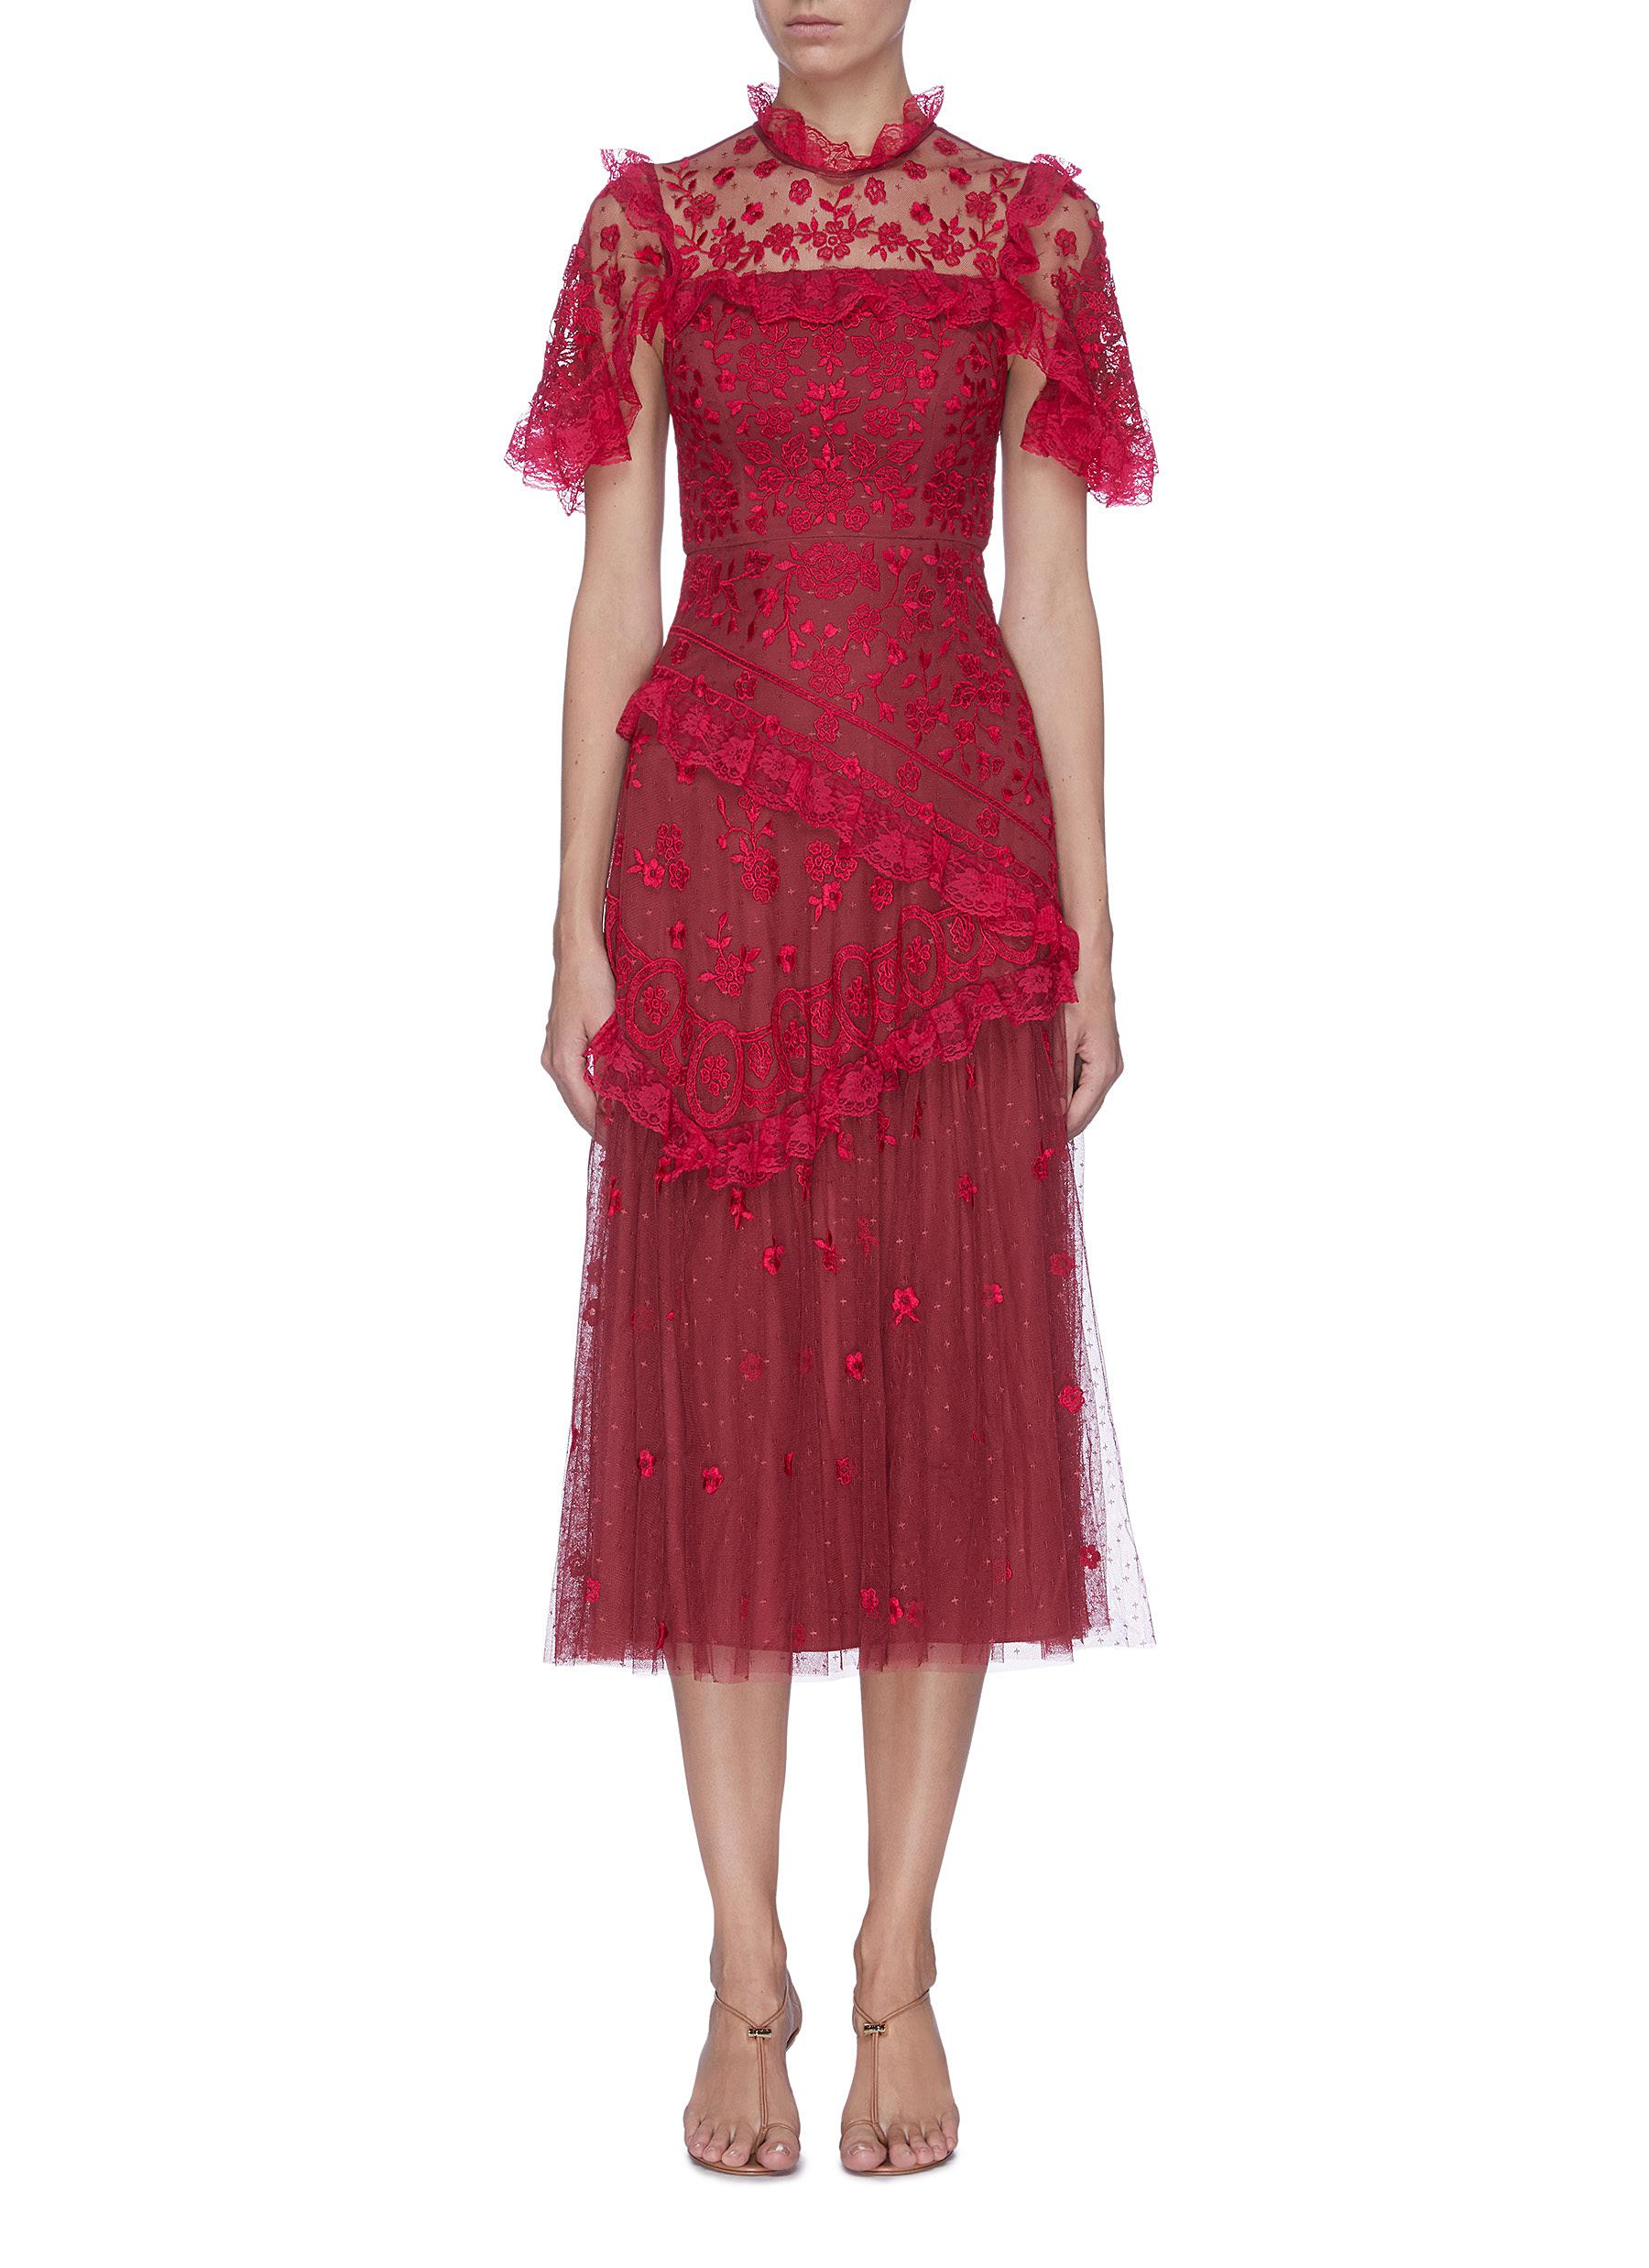 Buy Needle & Thread Dresses 'Elsa Ballerina' floral embroidered lace trim ruffle tiered tulle midi dress